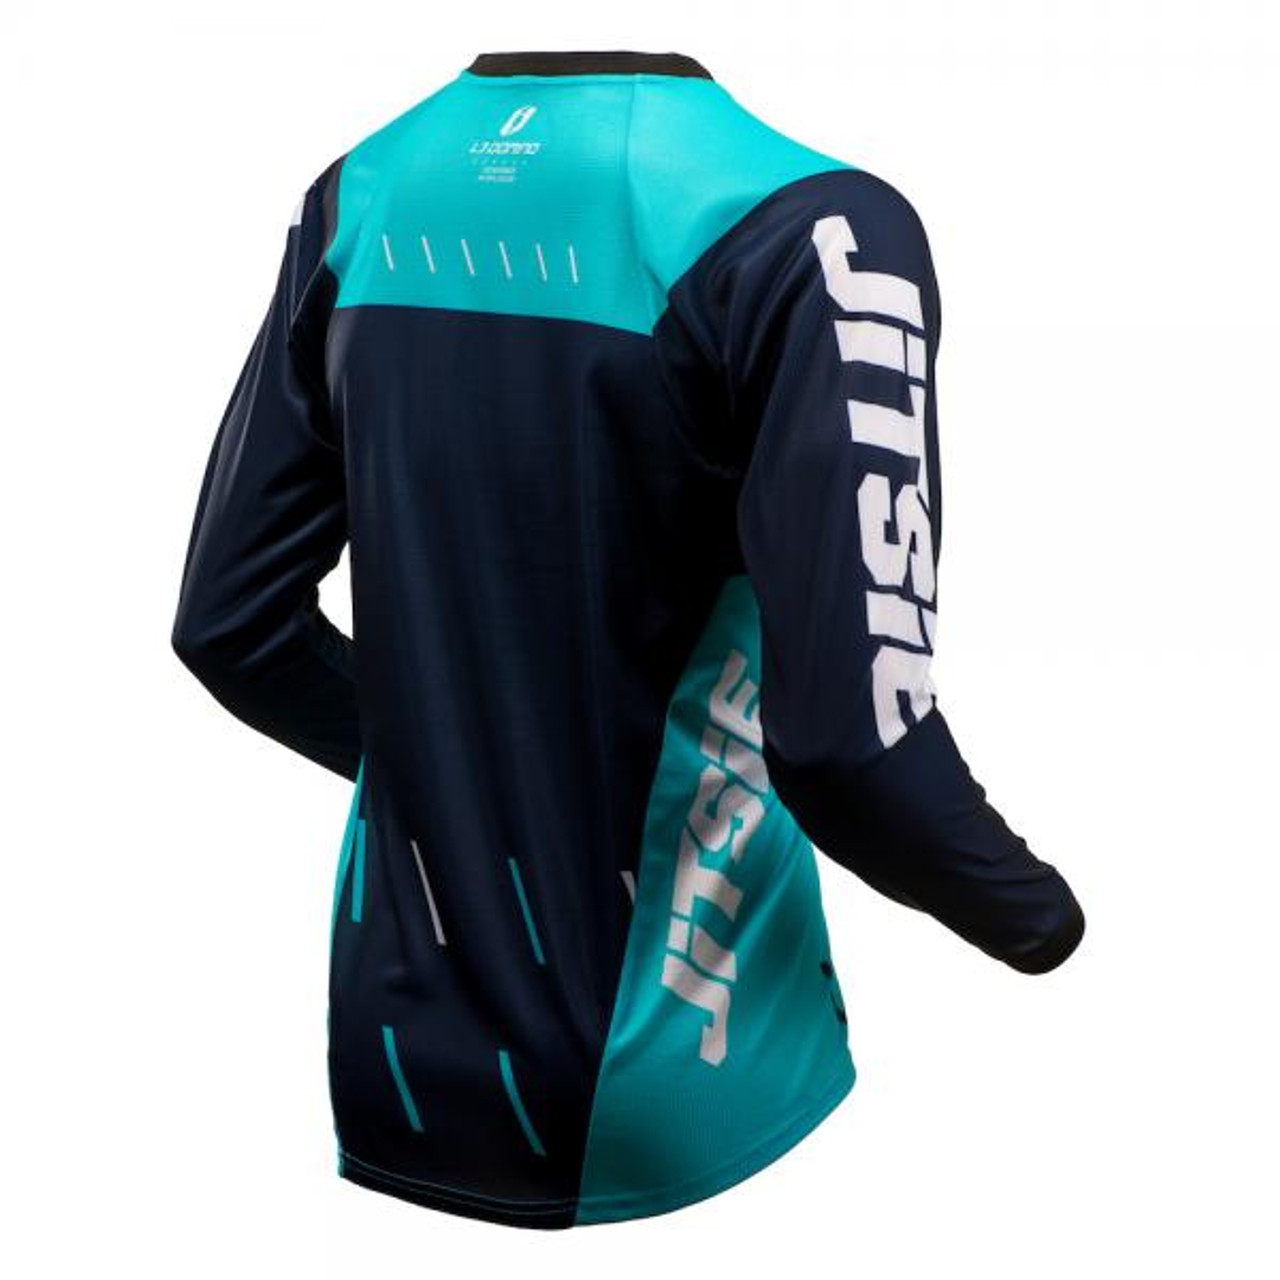 Jersey L3 Domino, navy/ teal/ white